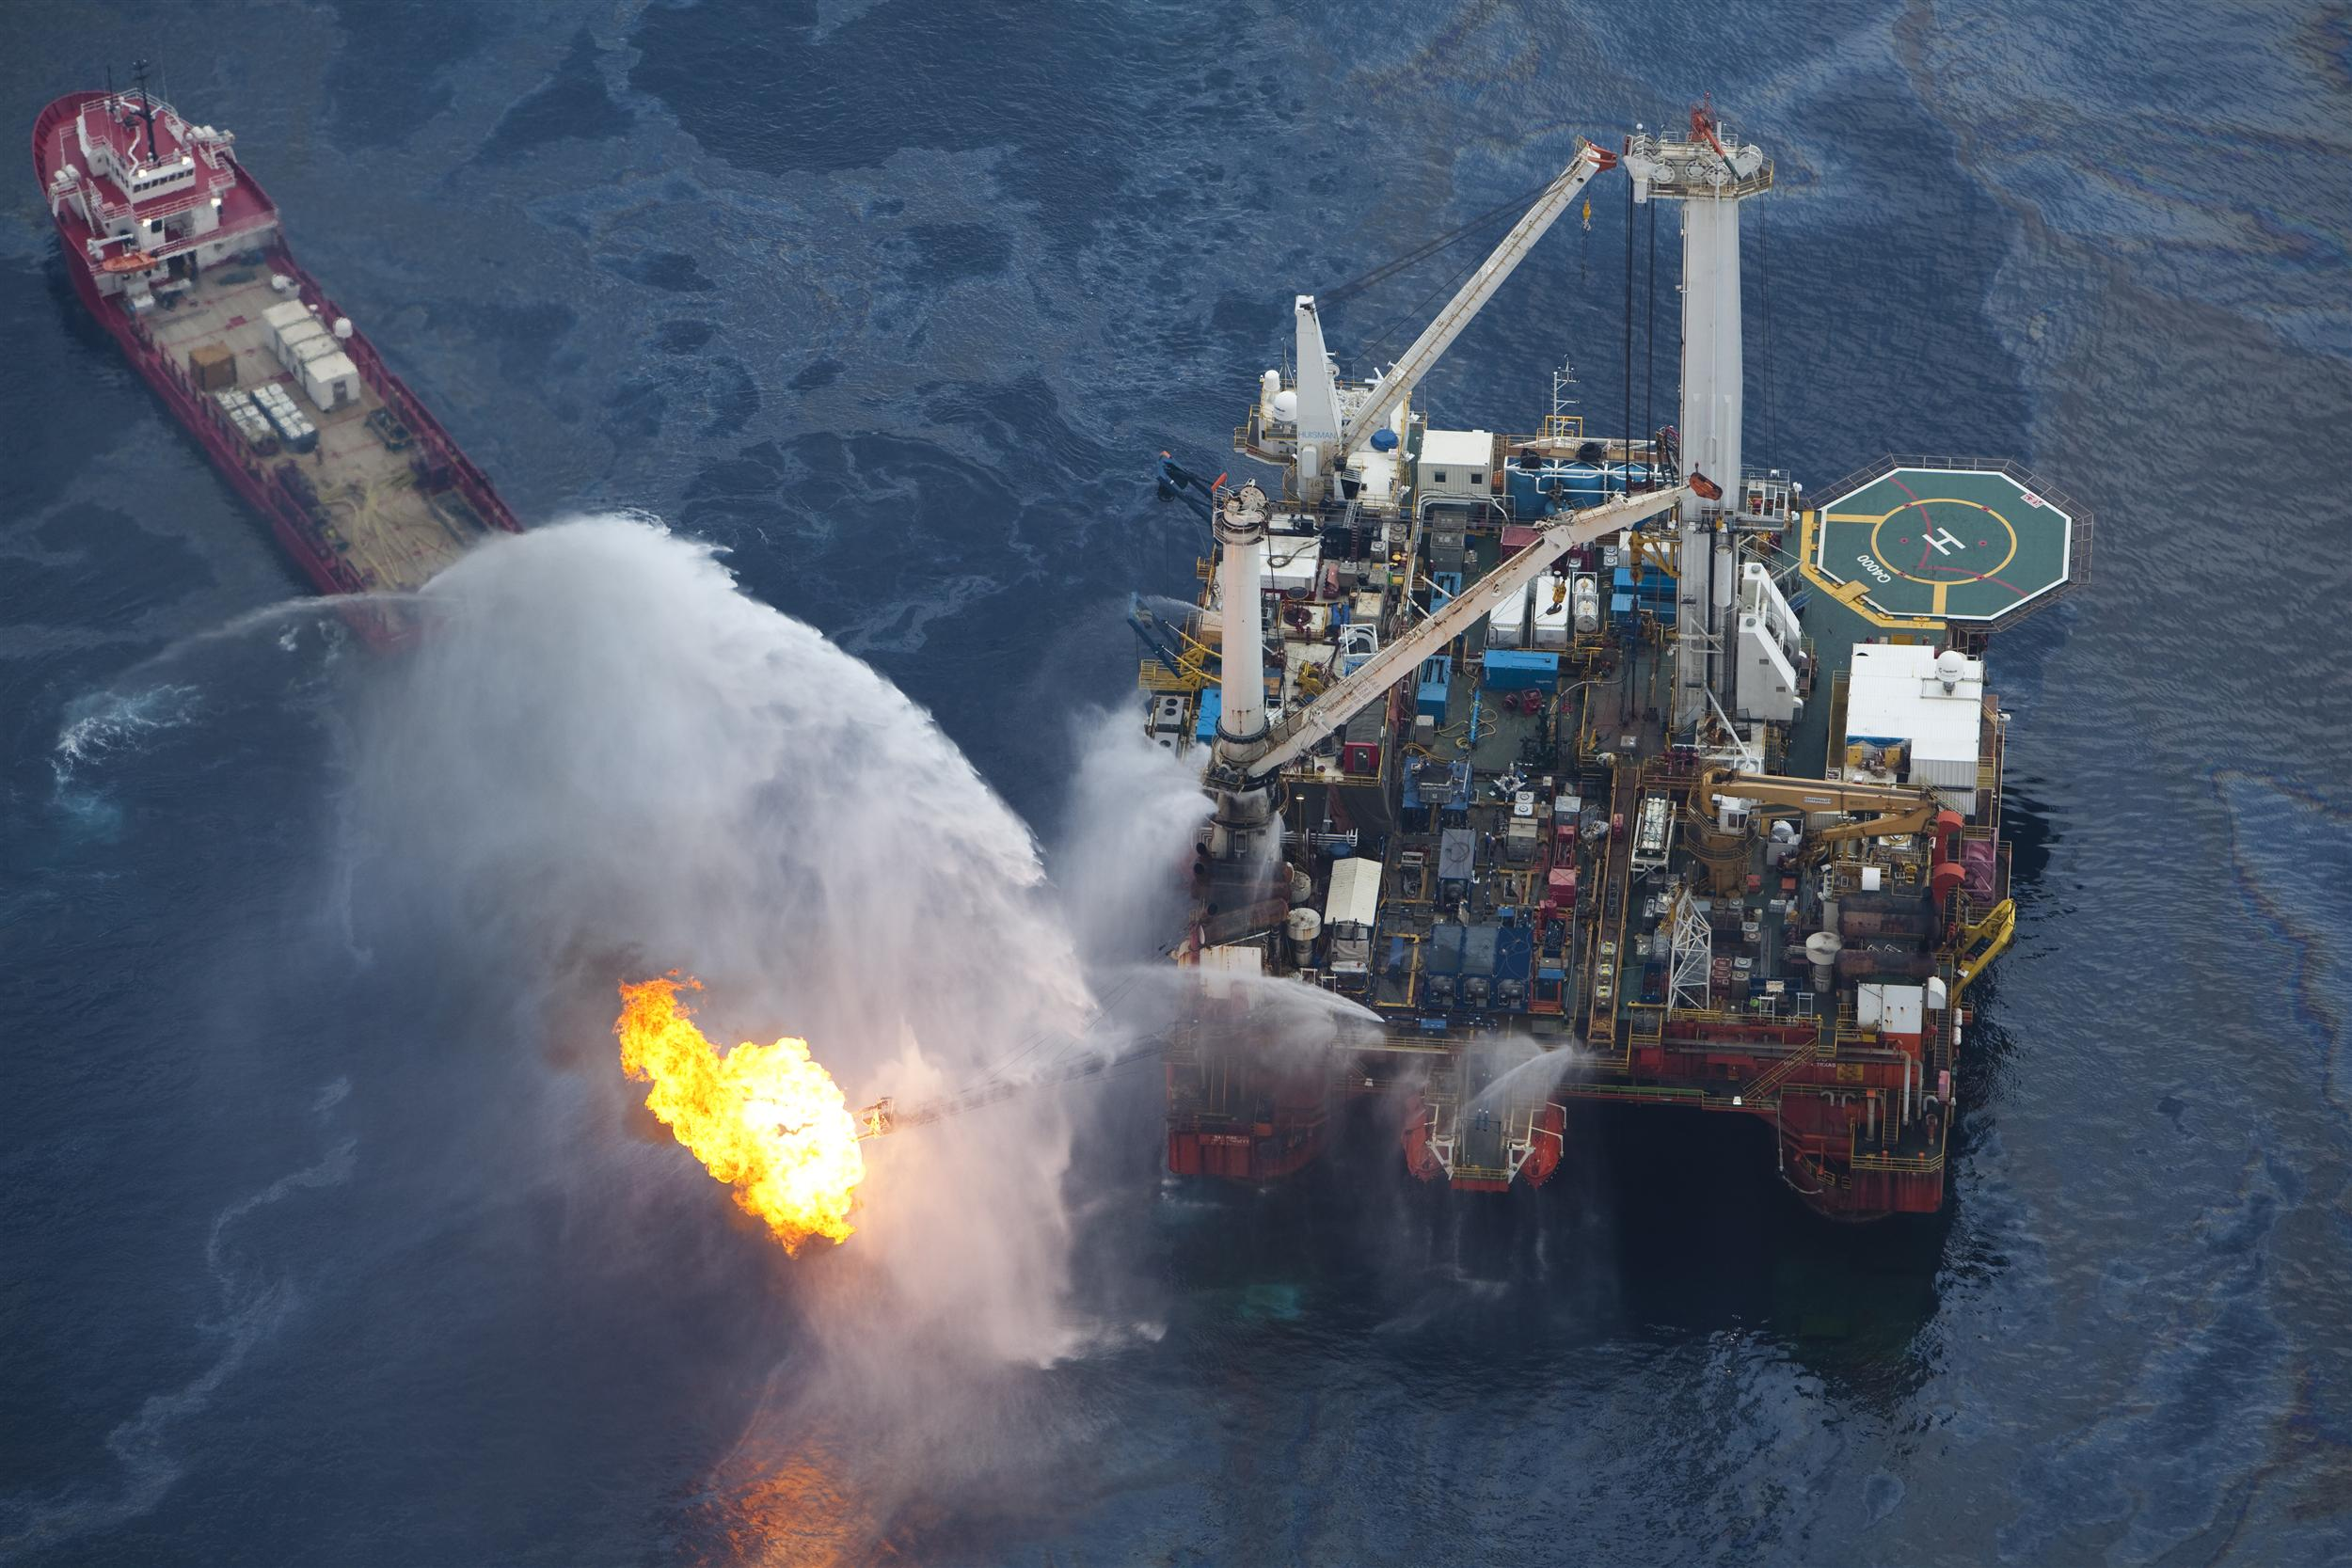 A ship sprays water on the pipe burning off the side of the platform in the Gulf of Mexico